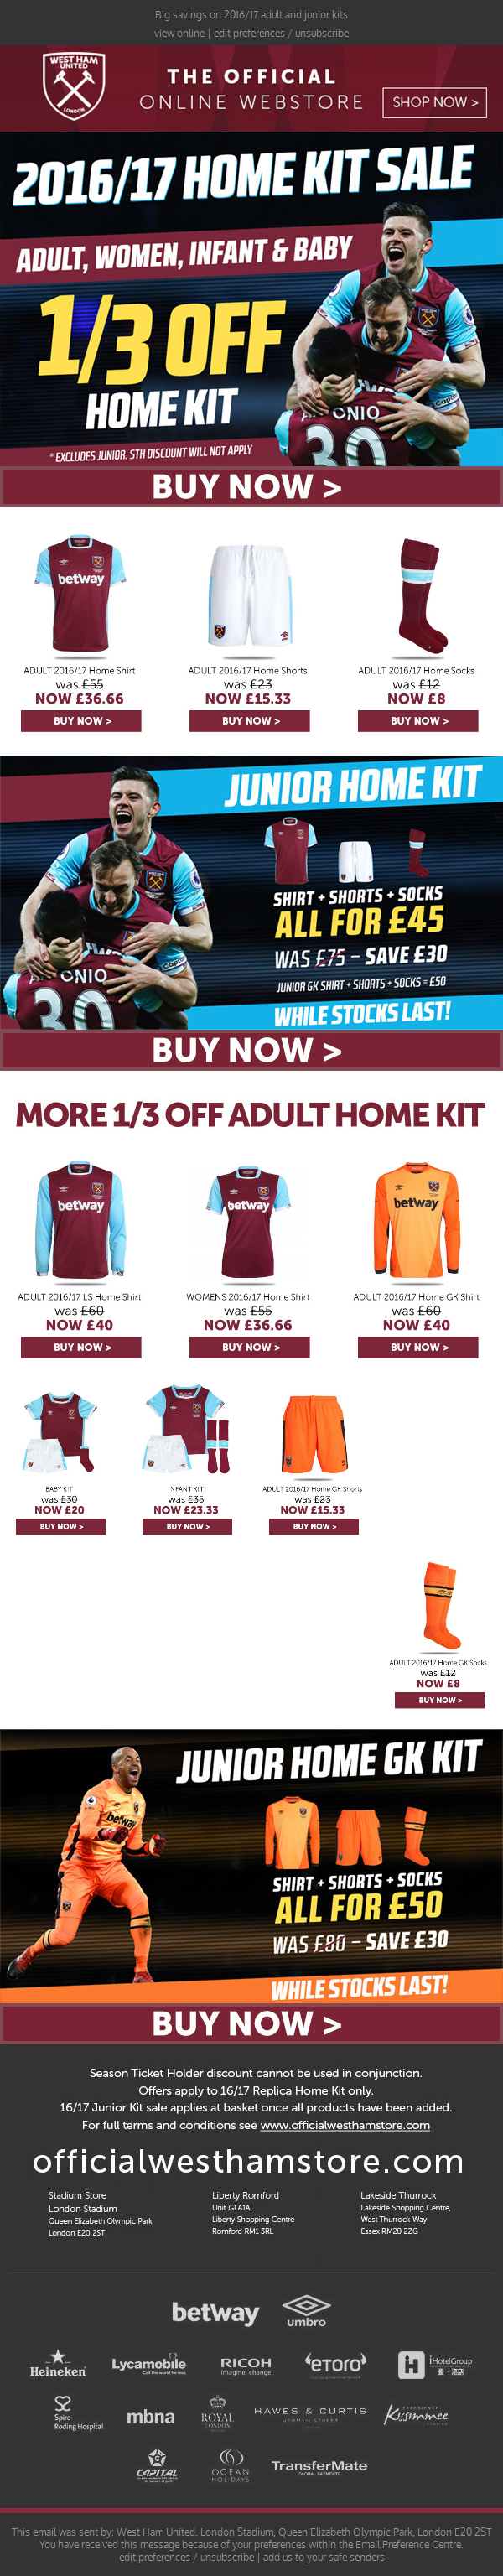 Get 1/3 off the Home kit!